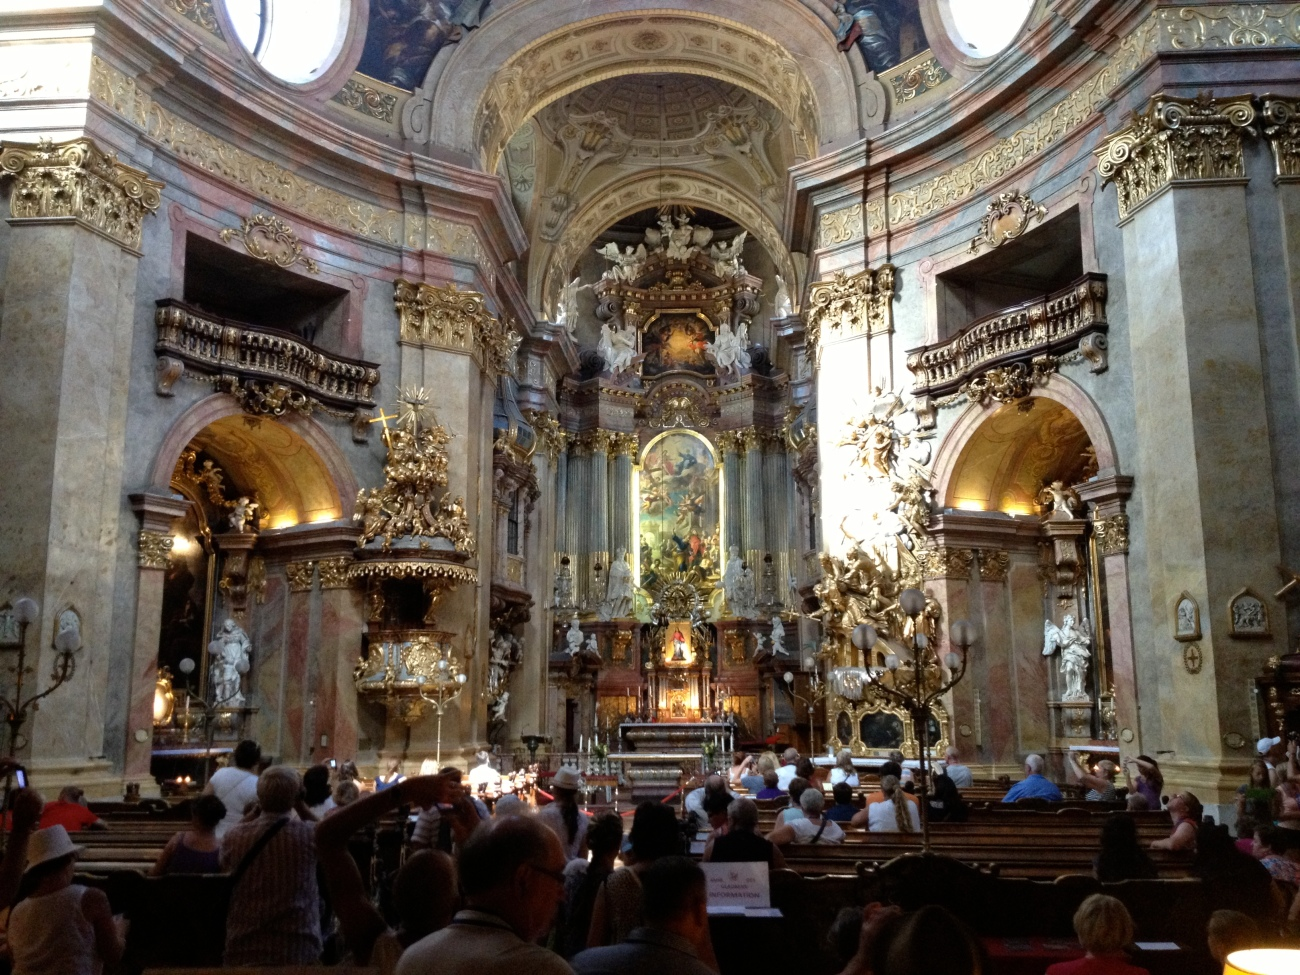 The interior of Peterskirche.